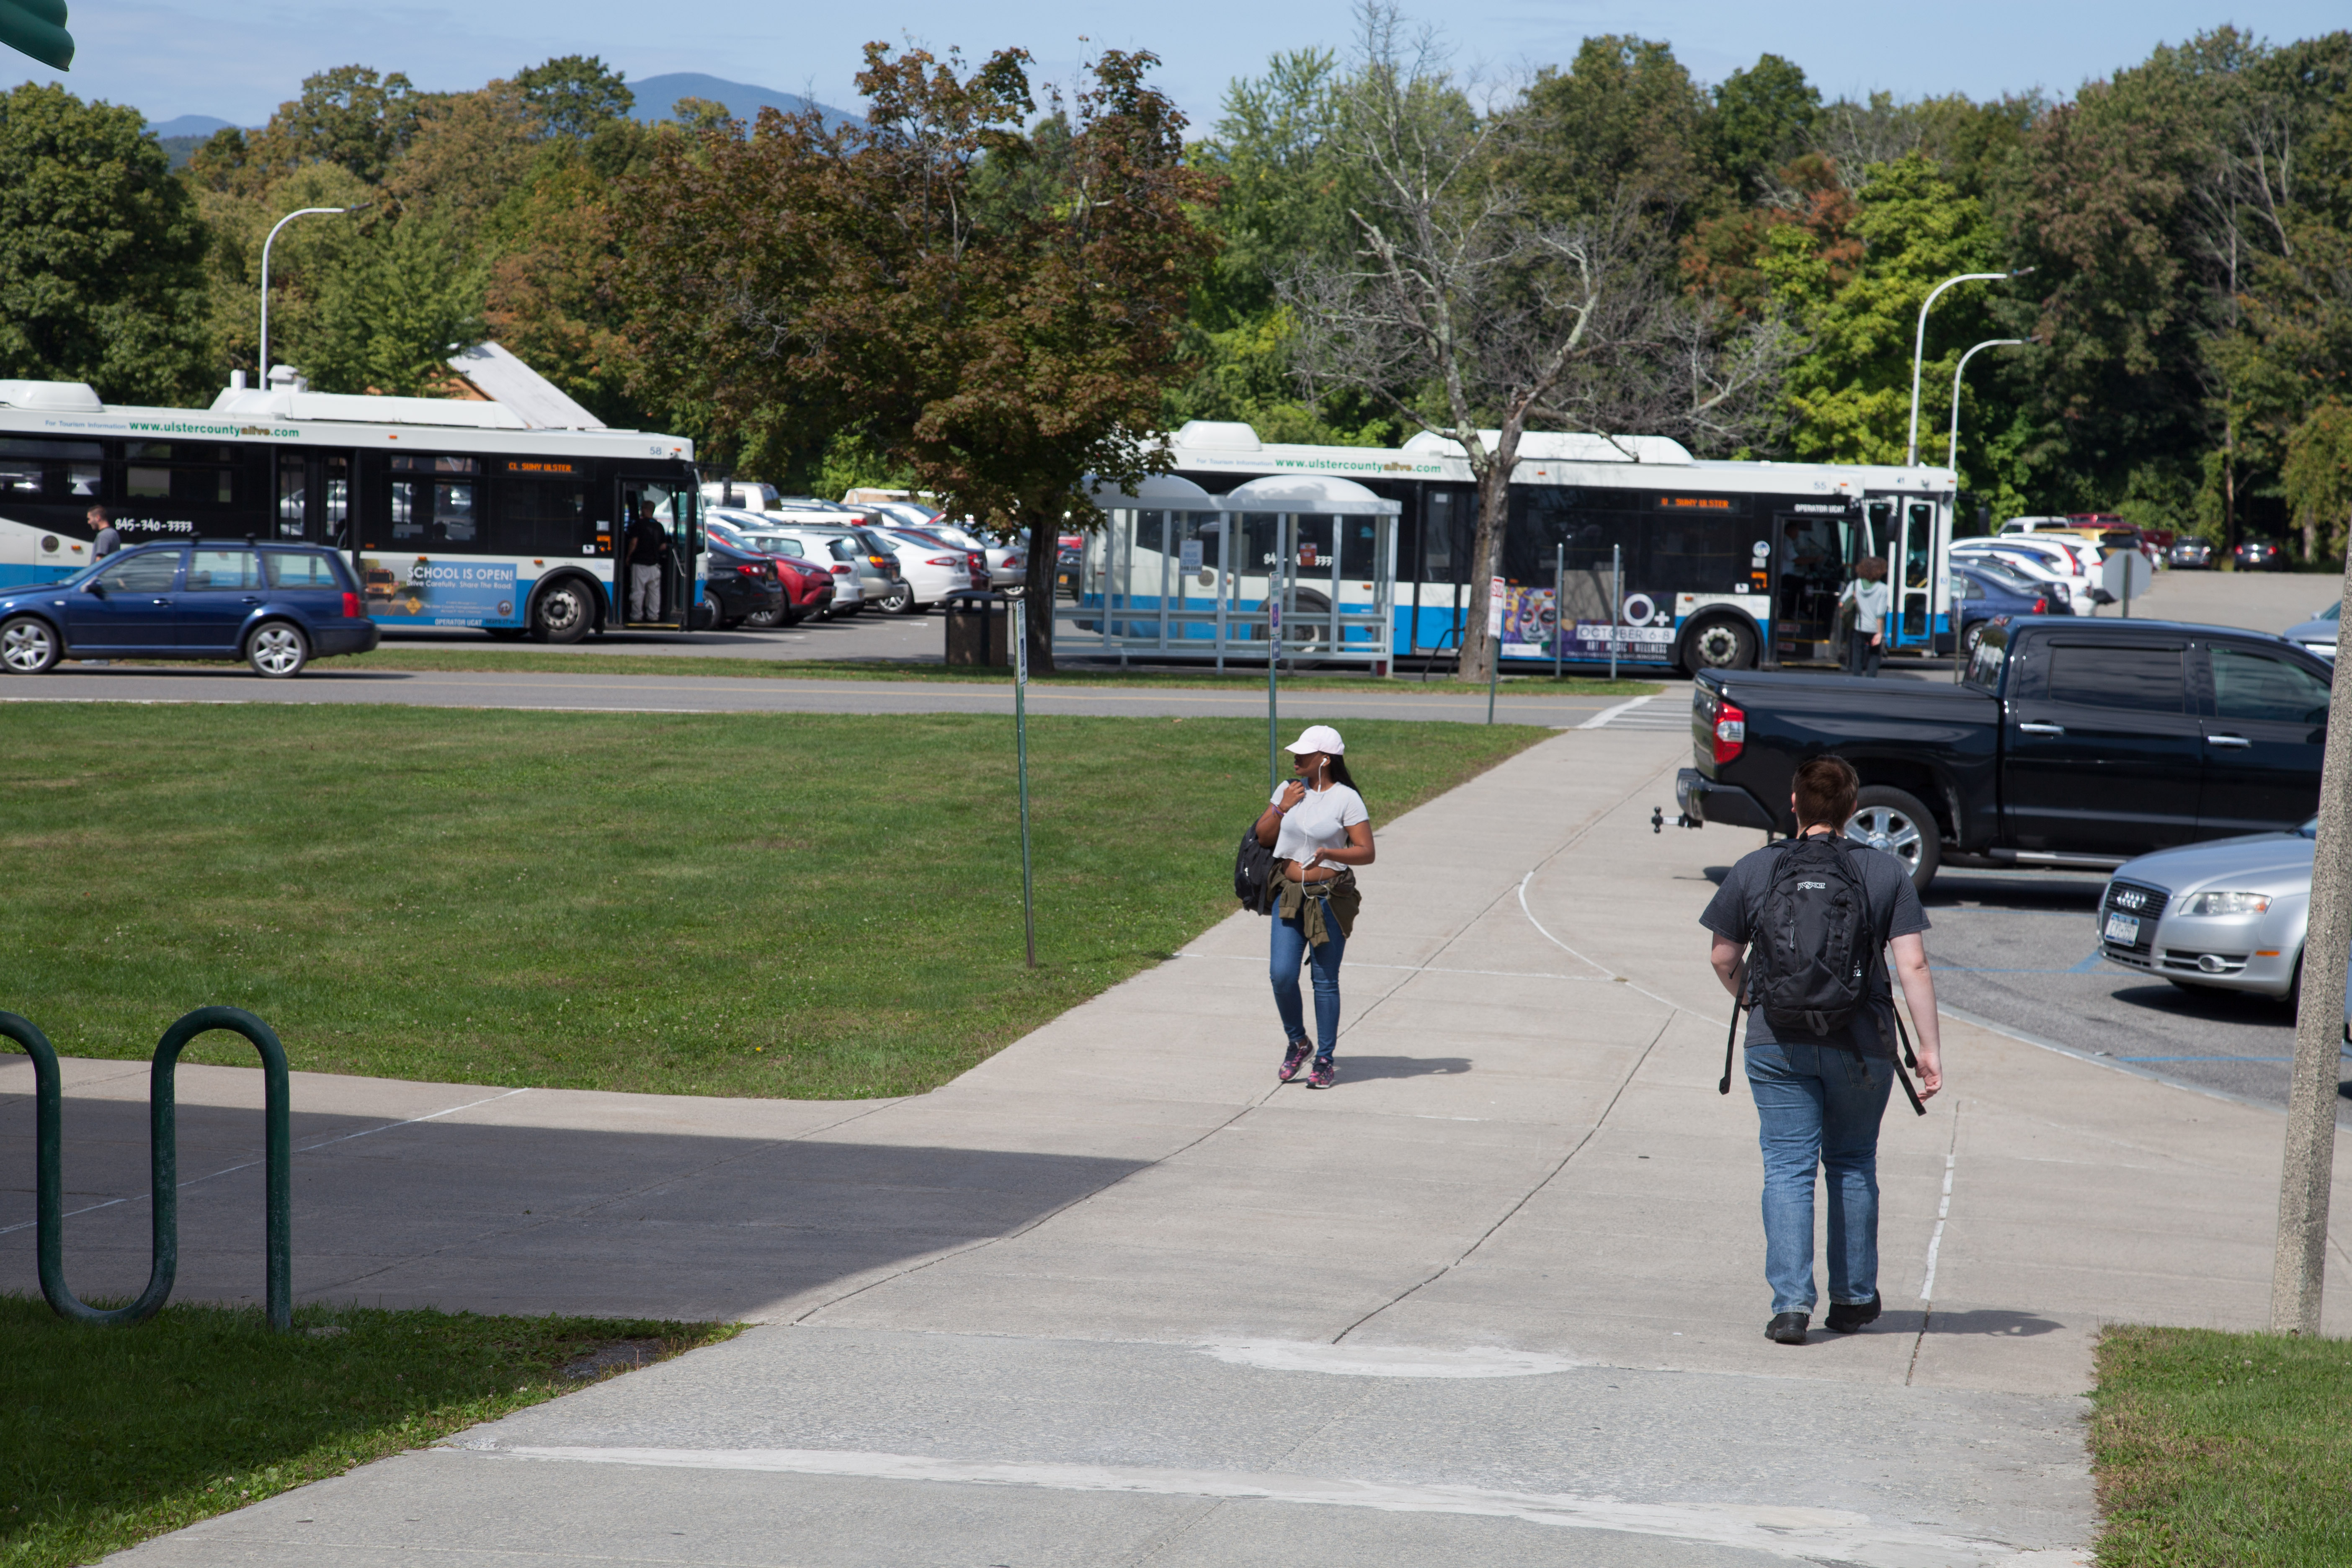 campus view with students and busses